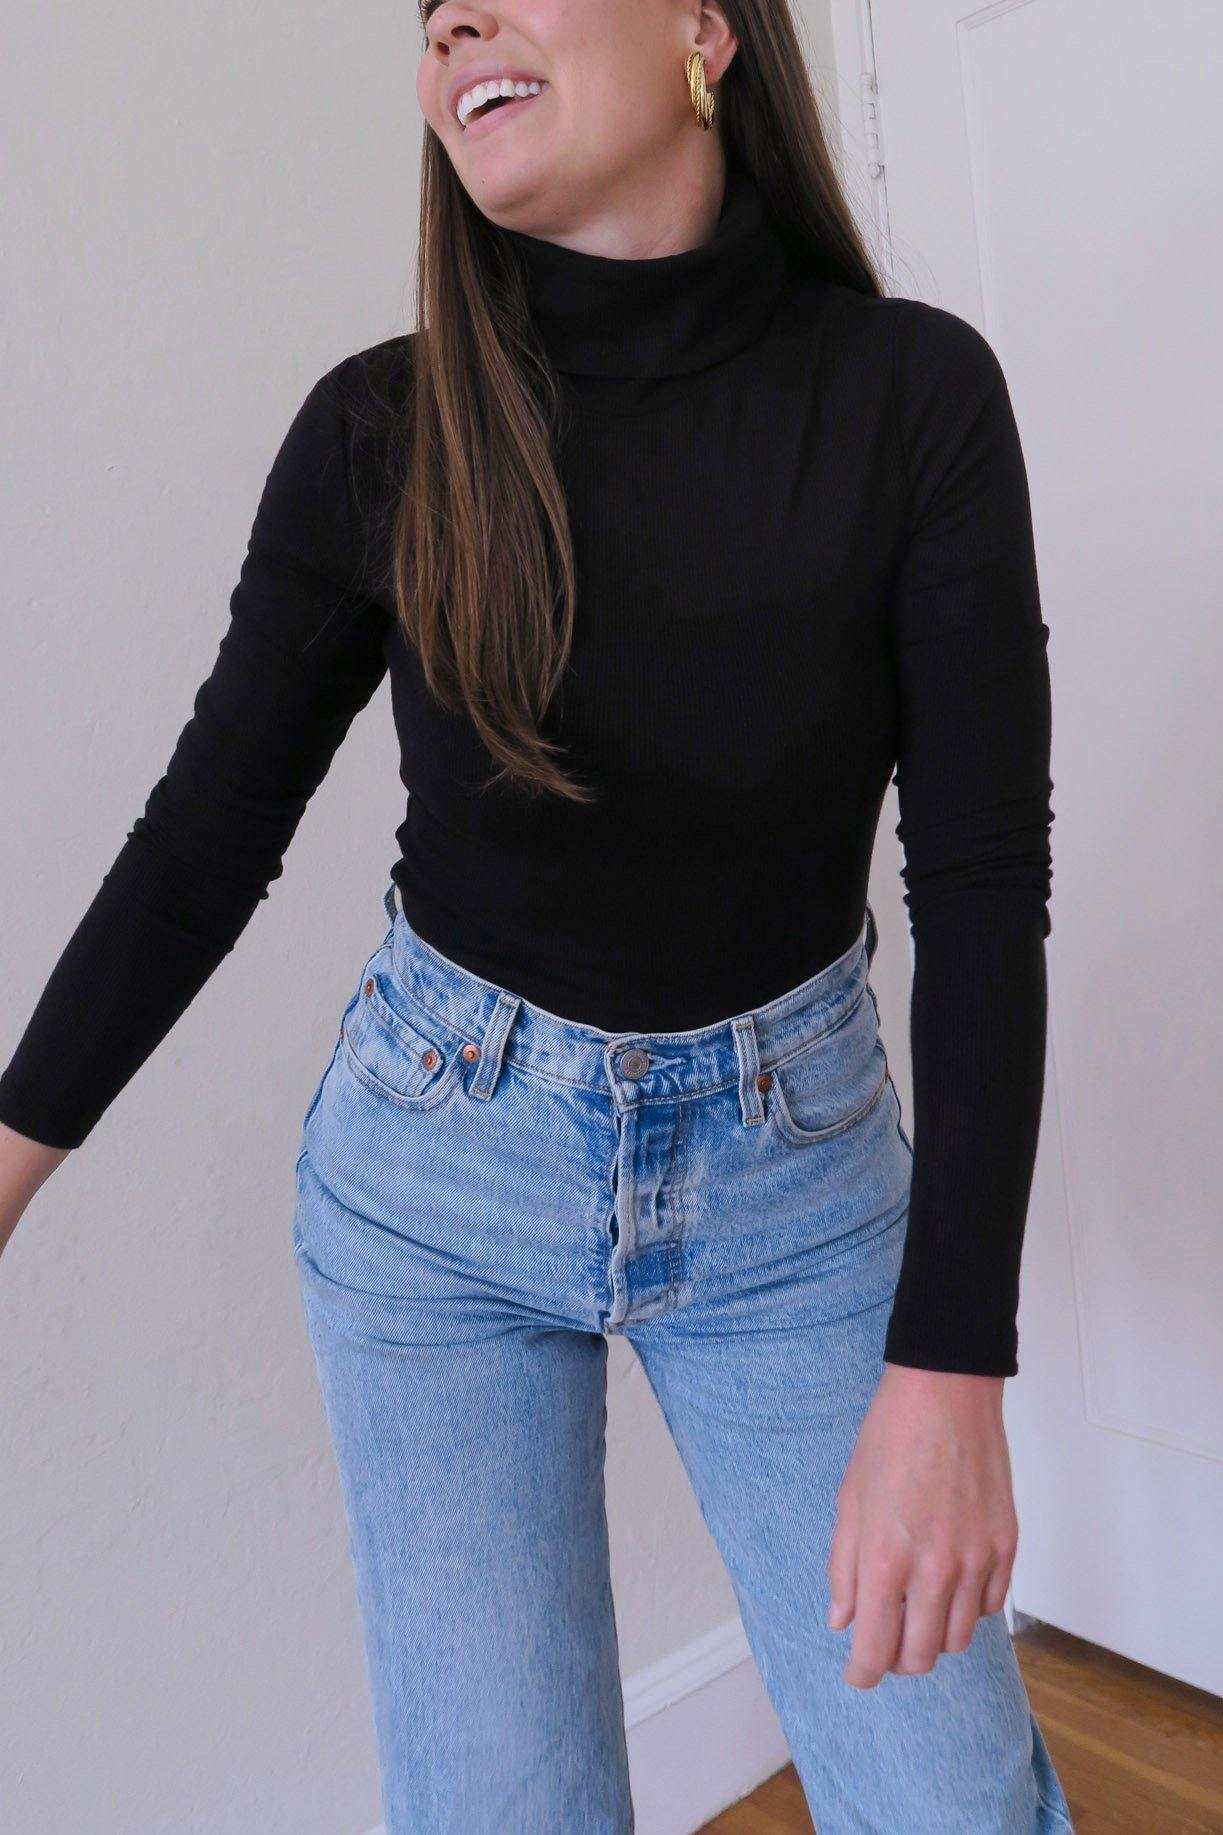 Ribbed Black Turtleneck from Sweet and Spark.